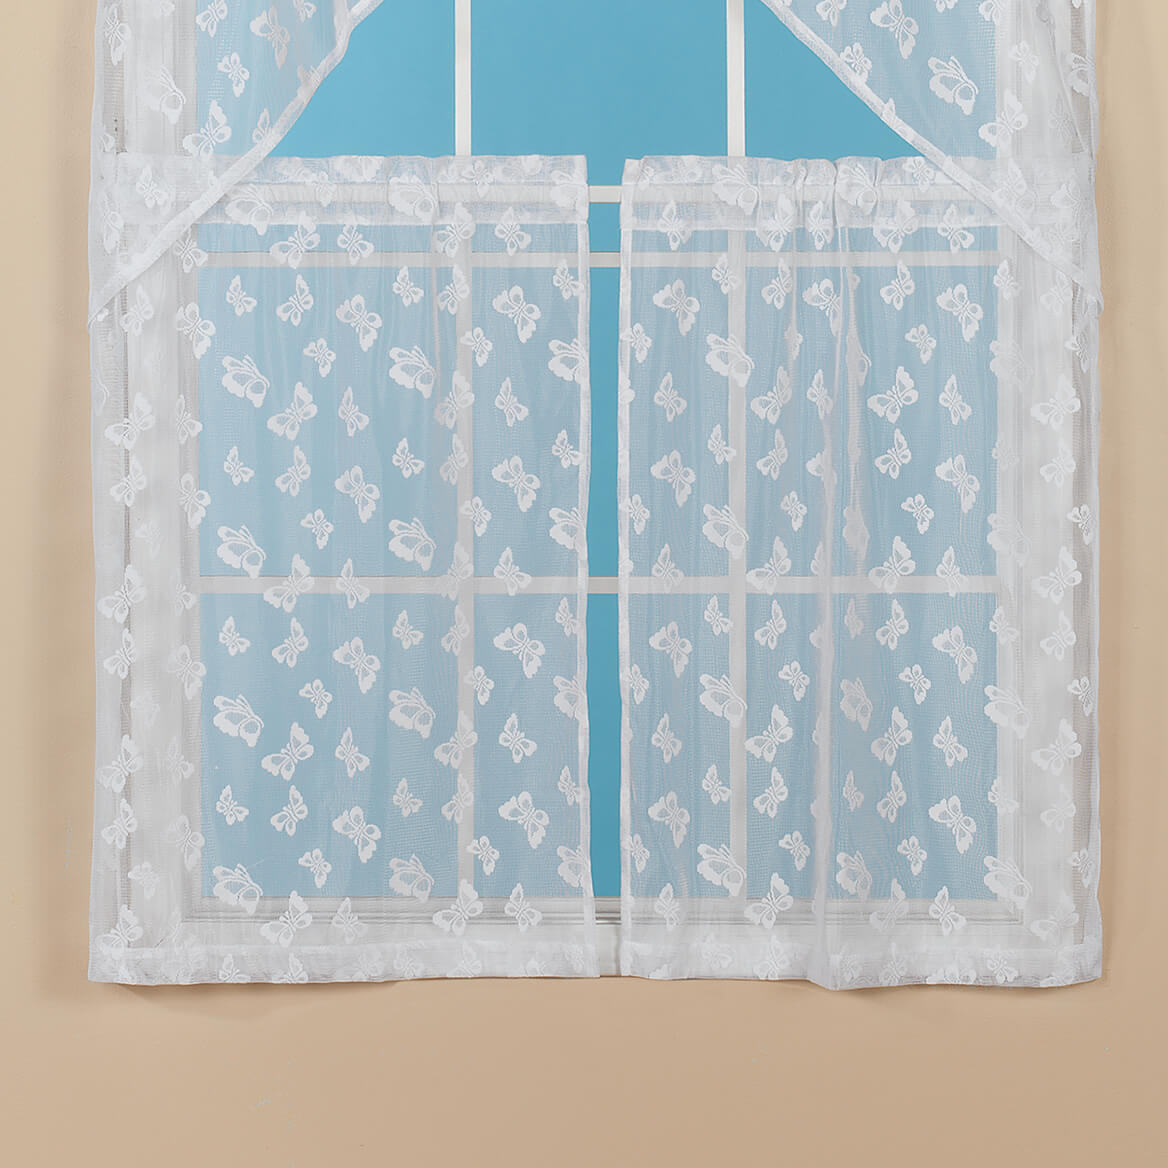 Butterfly Lace Café Kitchen Tier - Butterfly curtains - Walter Drake